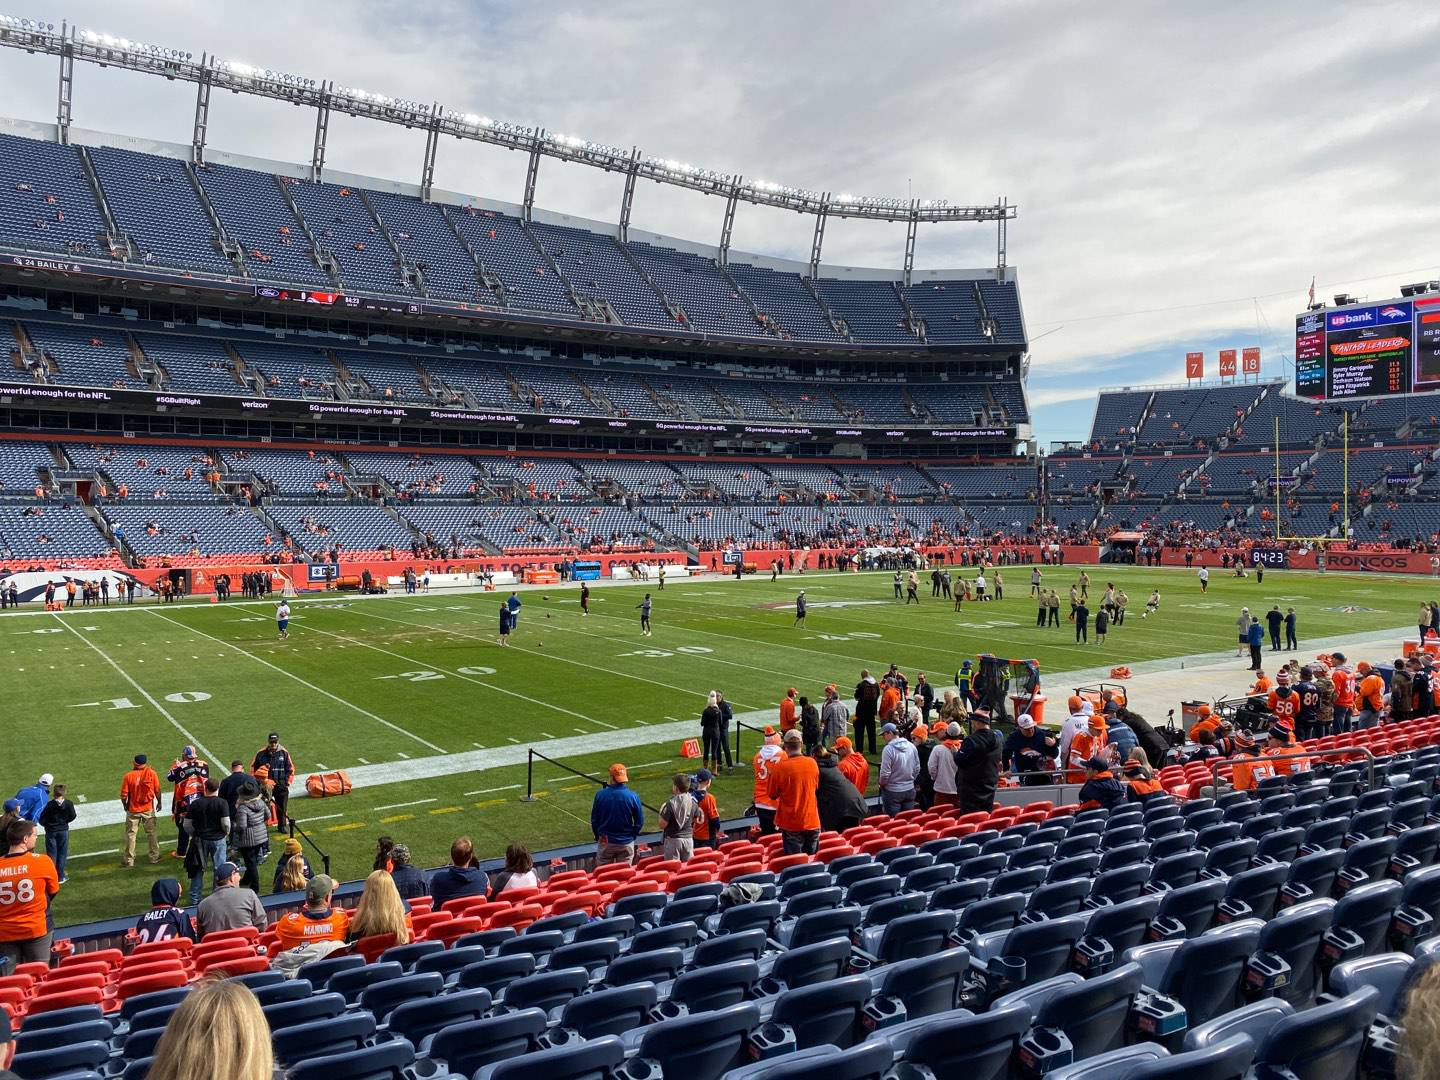 Empower Field at Mile High Stadium Section 108 Row 15 Seat 19